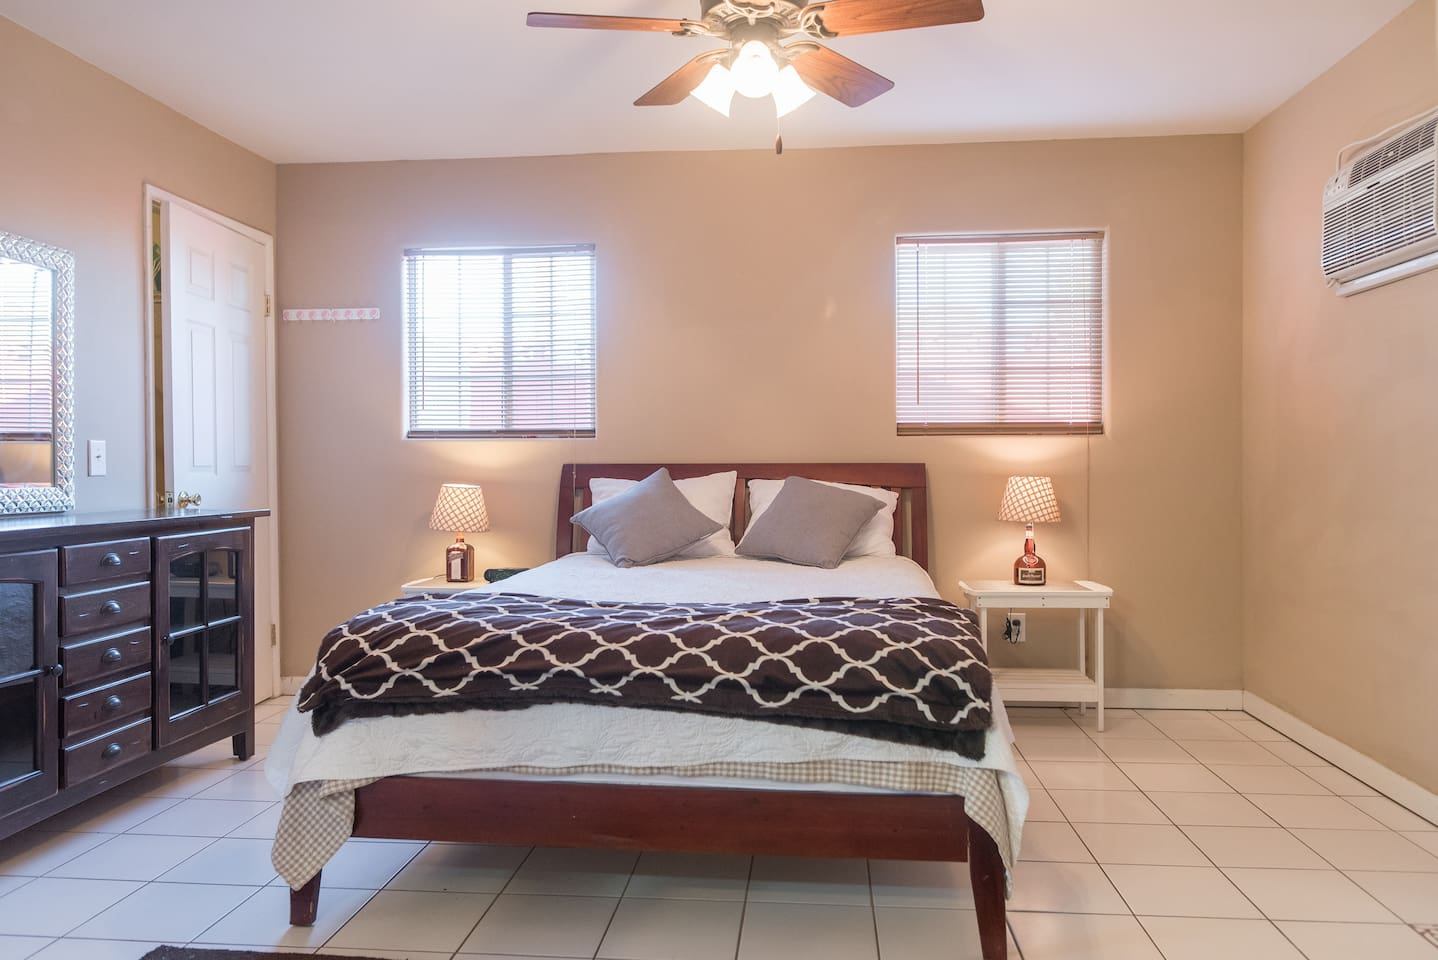 Bedroom with a fabulous Beauty Rest mattress